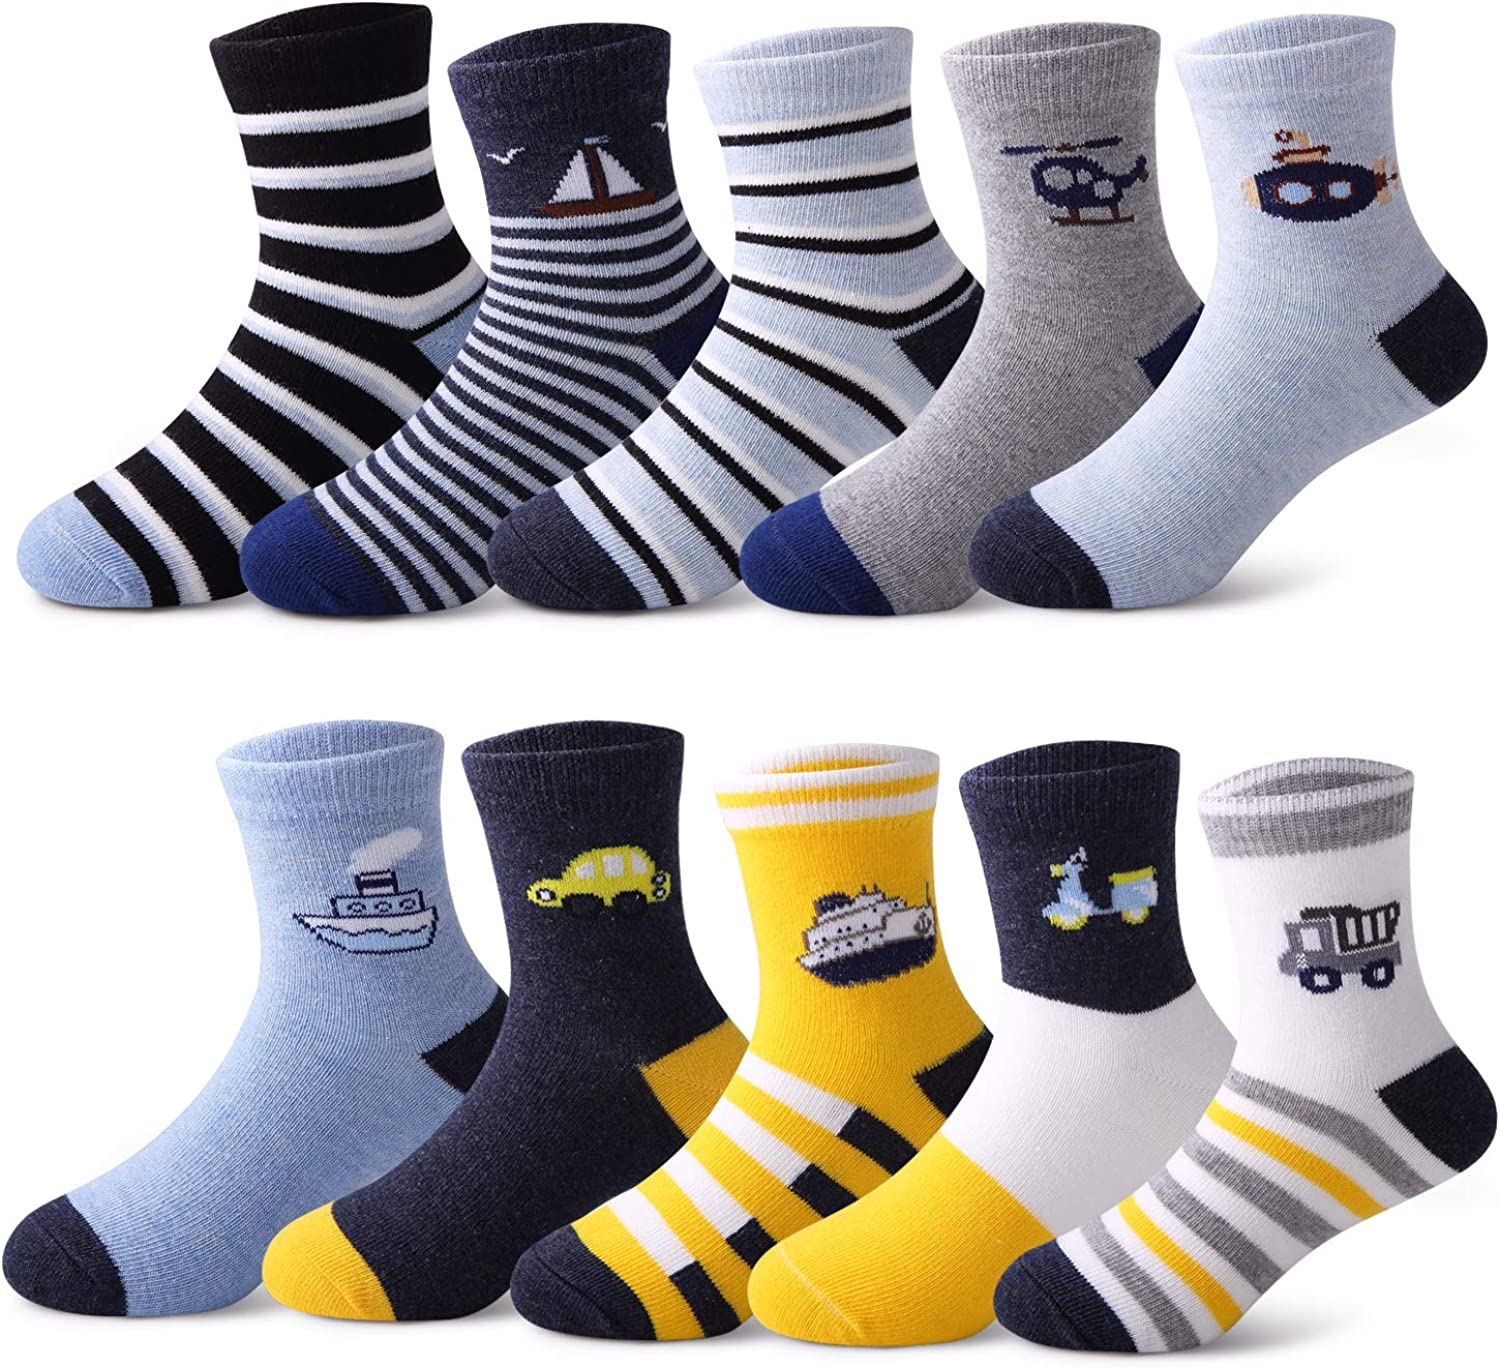 10 Pairs Kids Boys Socks Colorful Free shipping New Brand new Cotton Fashion Novelty